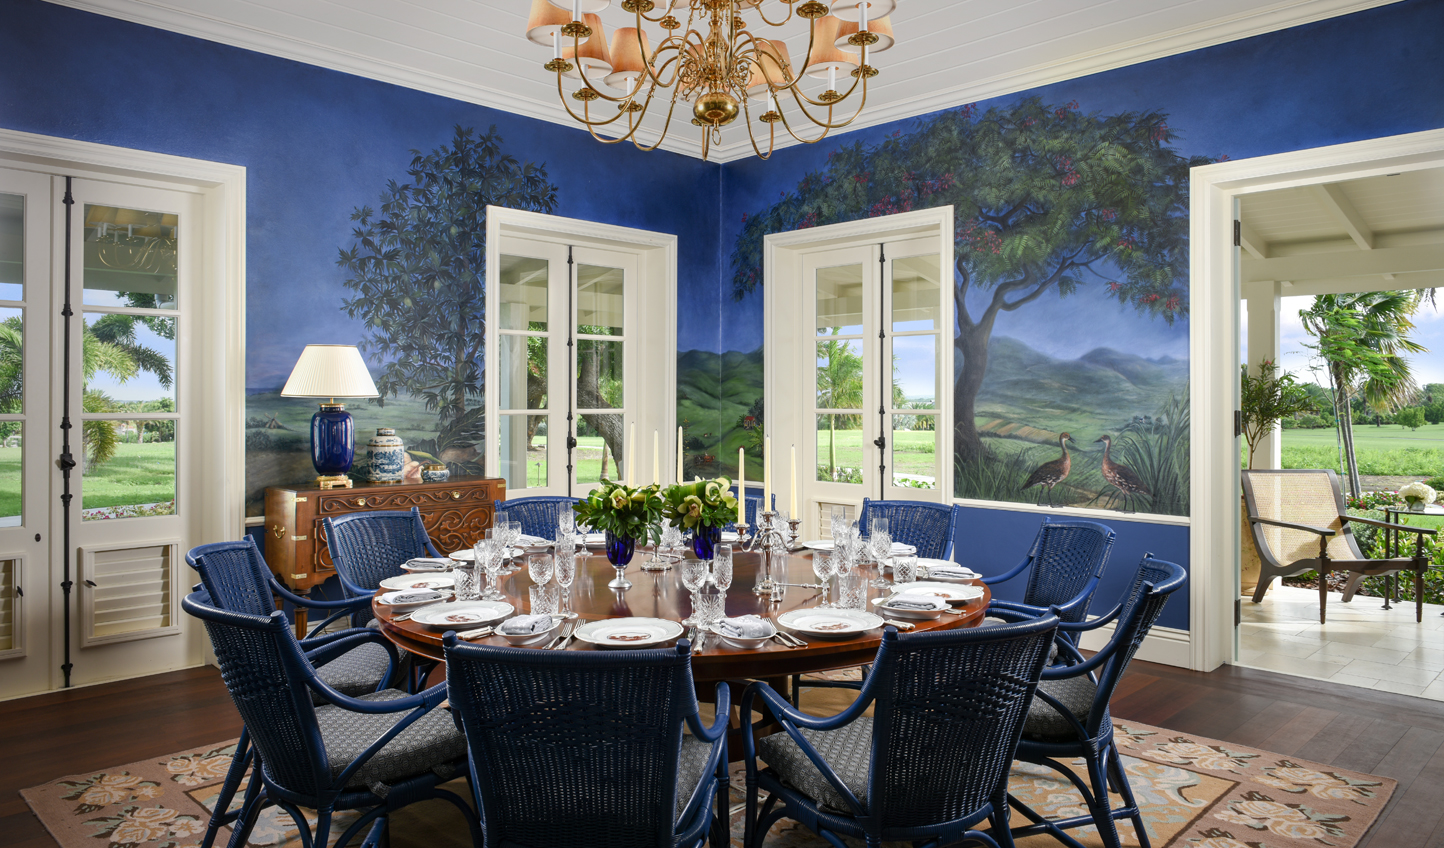 Dine in colonial splendour at the Estate House